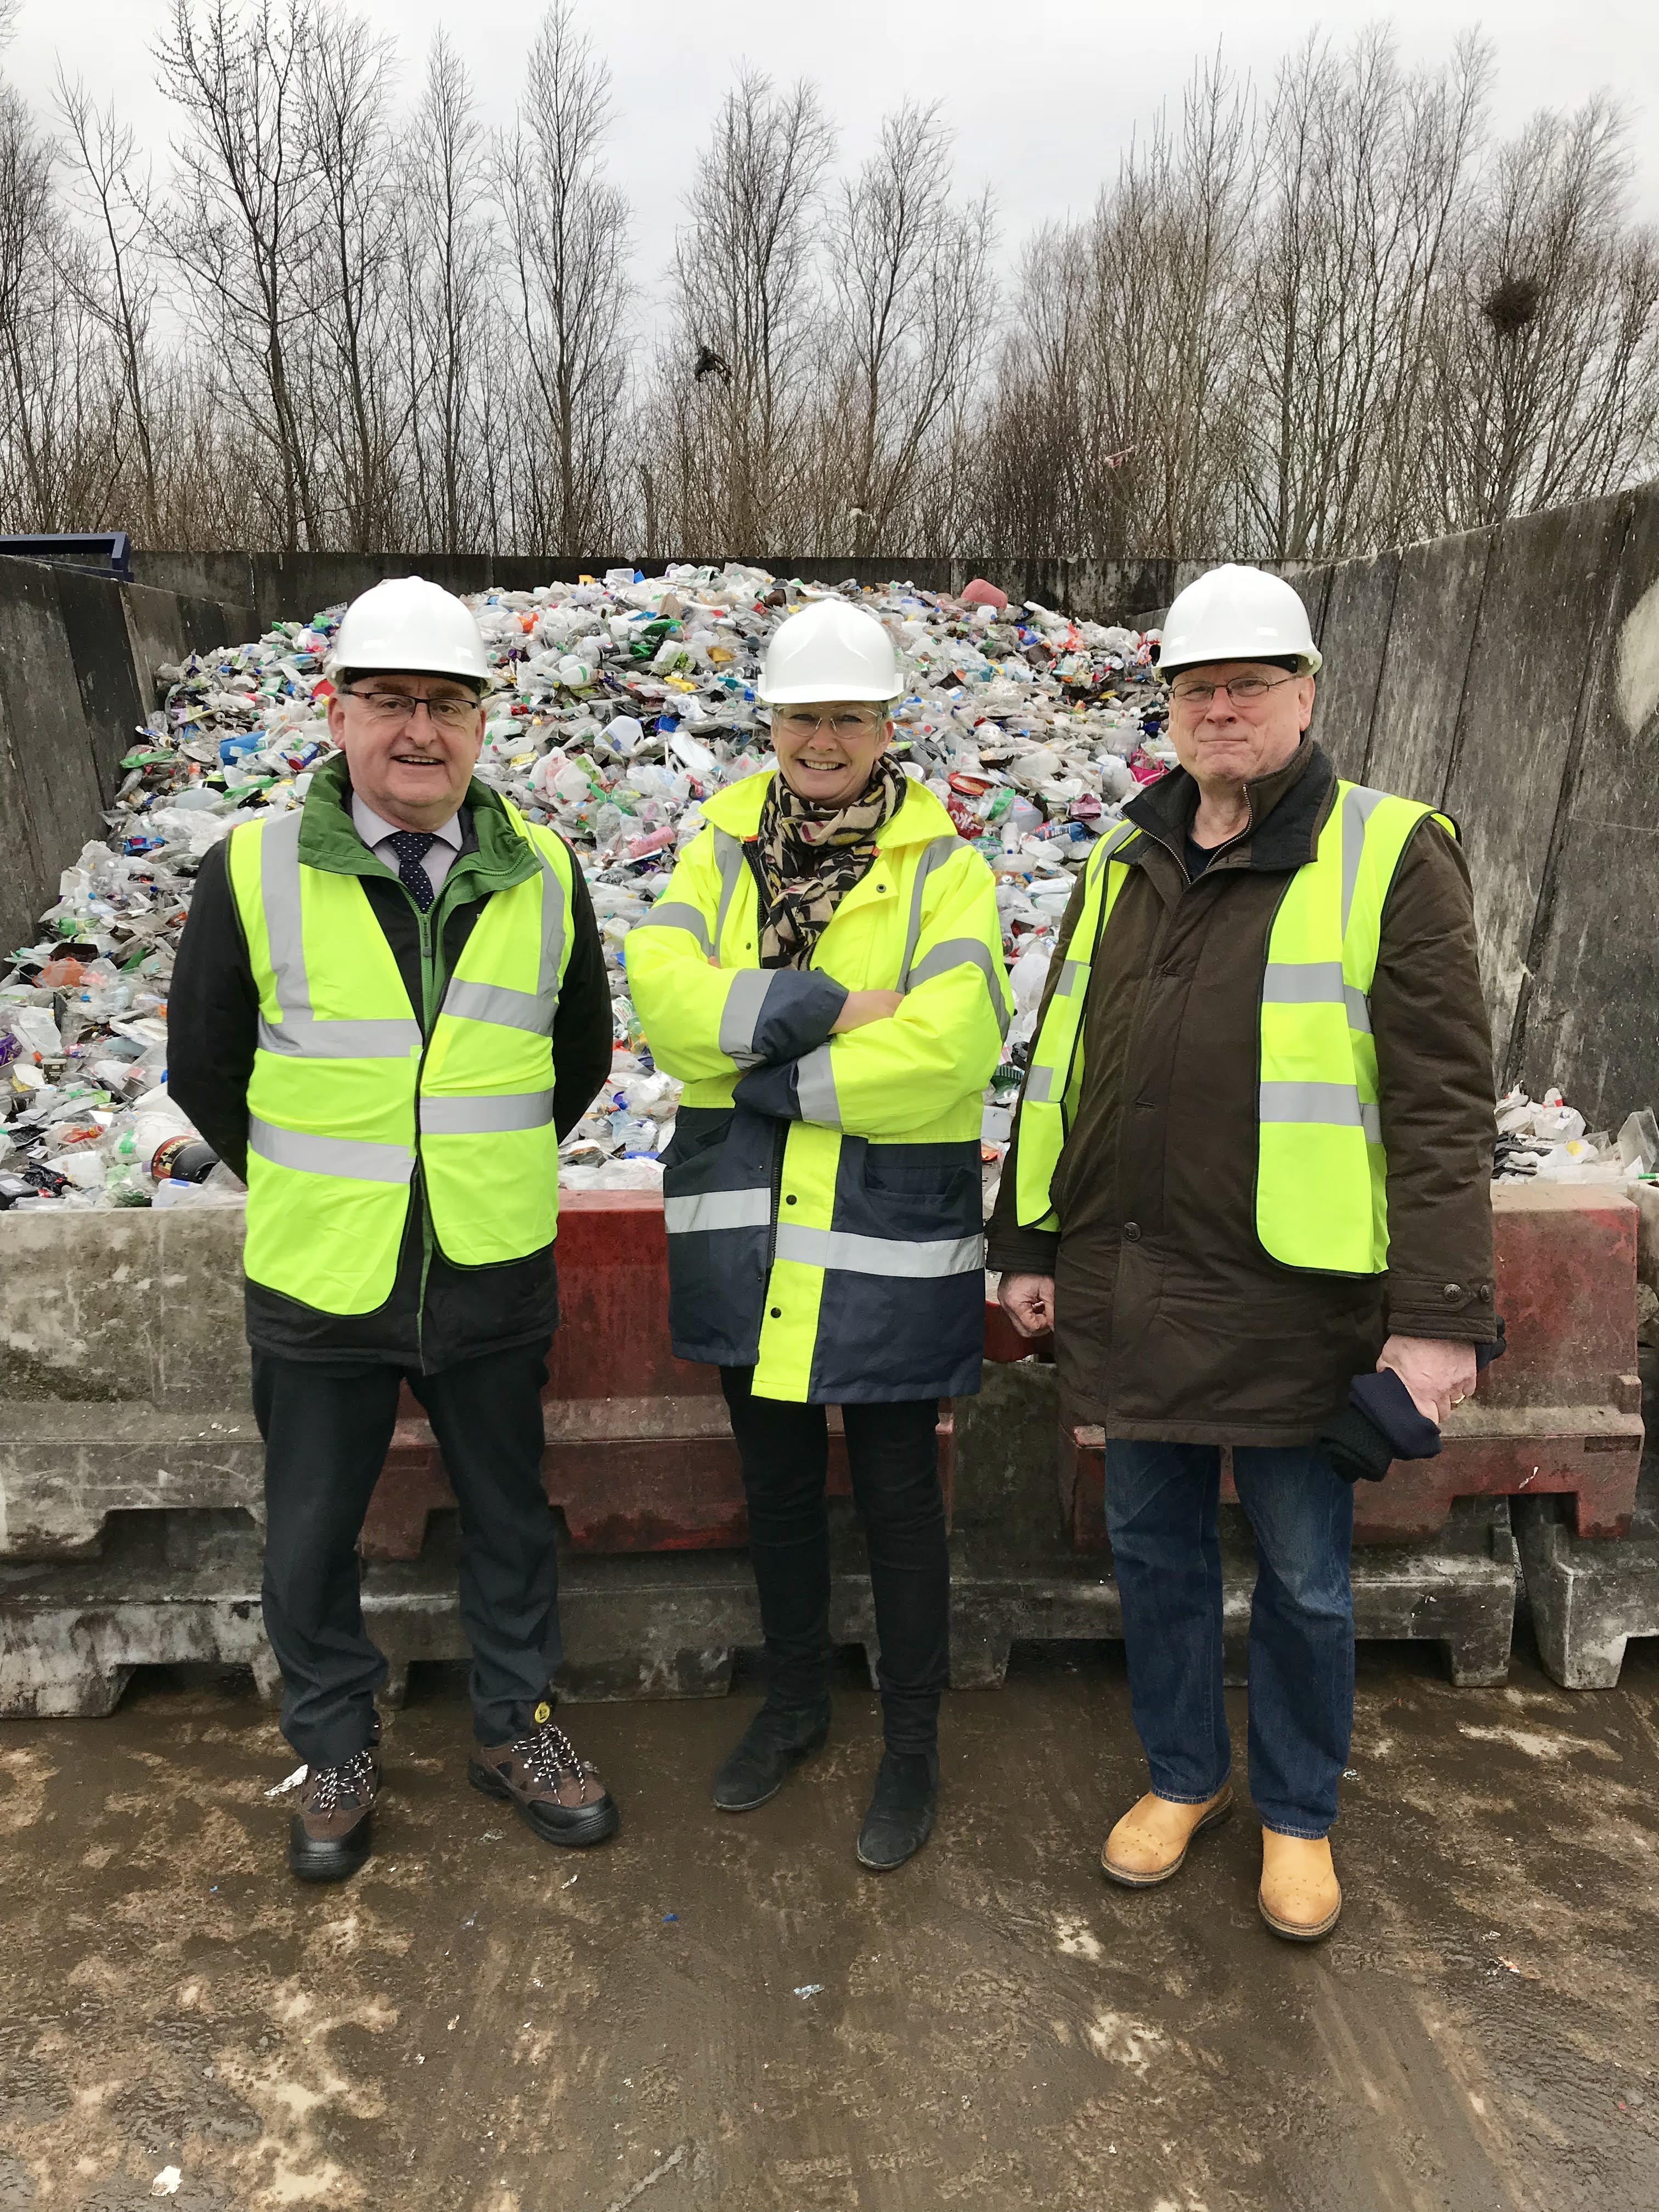 Cyril Dave and Liz at Waste Plant.jpg